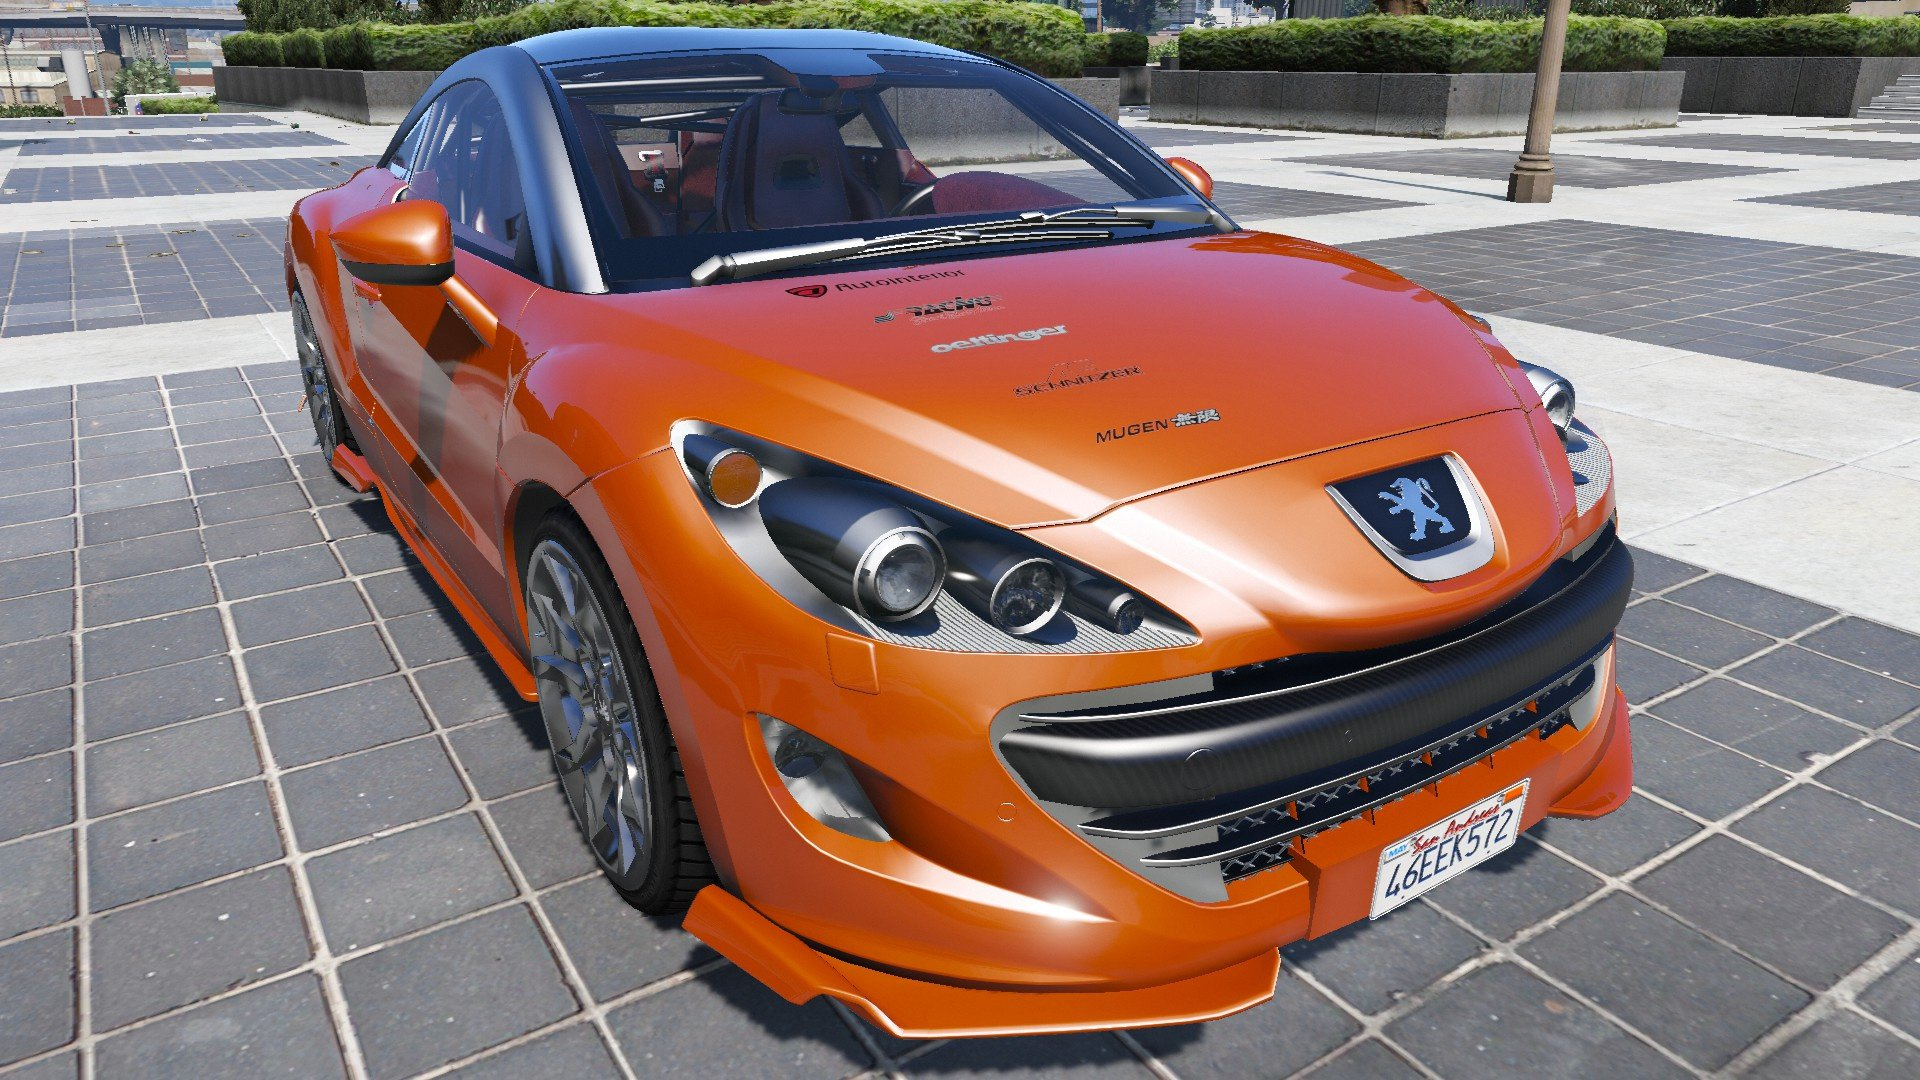 peugeot 308 rcz 2010 vehicules pour gta v sur gta modding. Black Bedroom Furniture Sets. Home Design Ideas